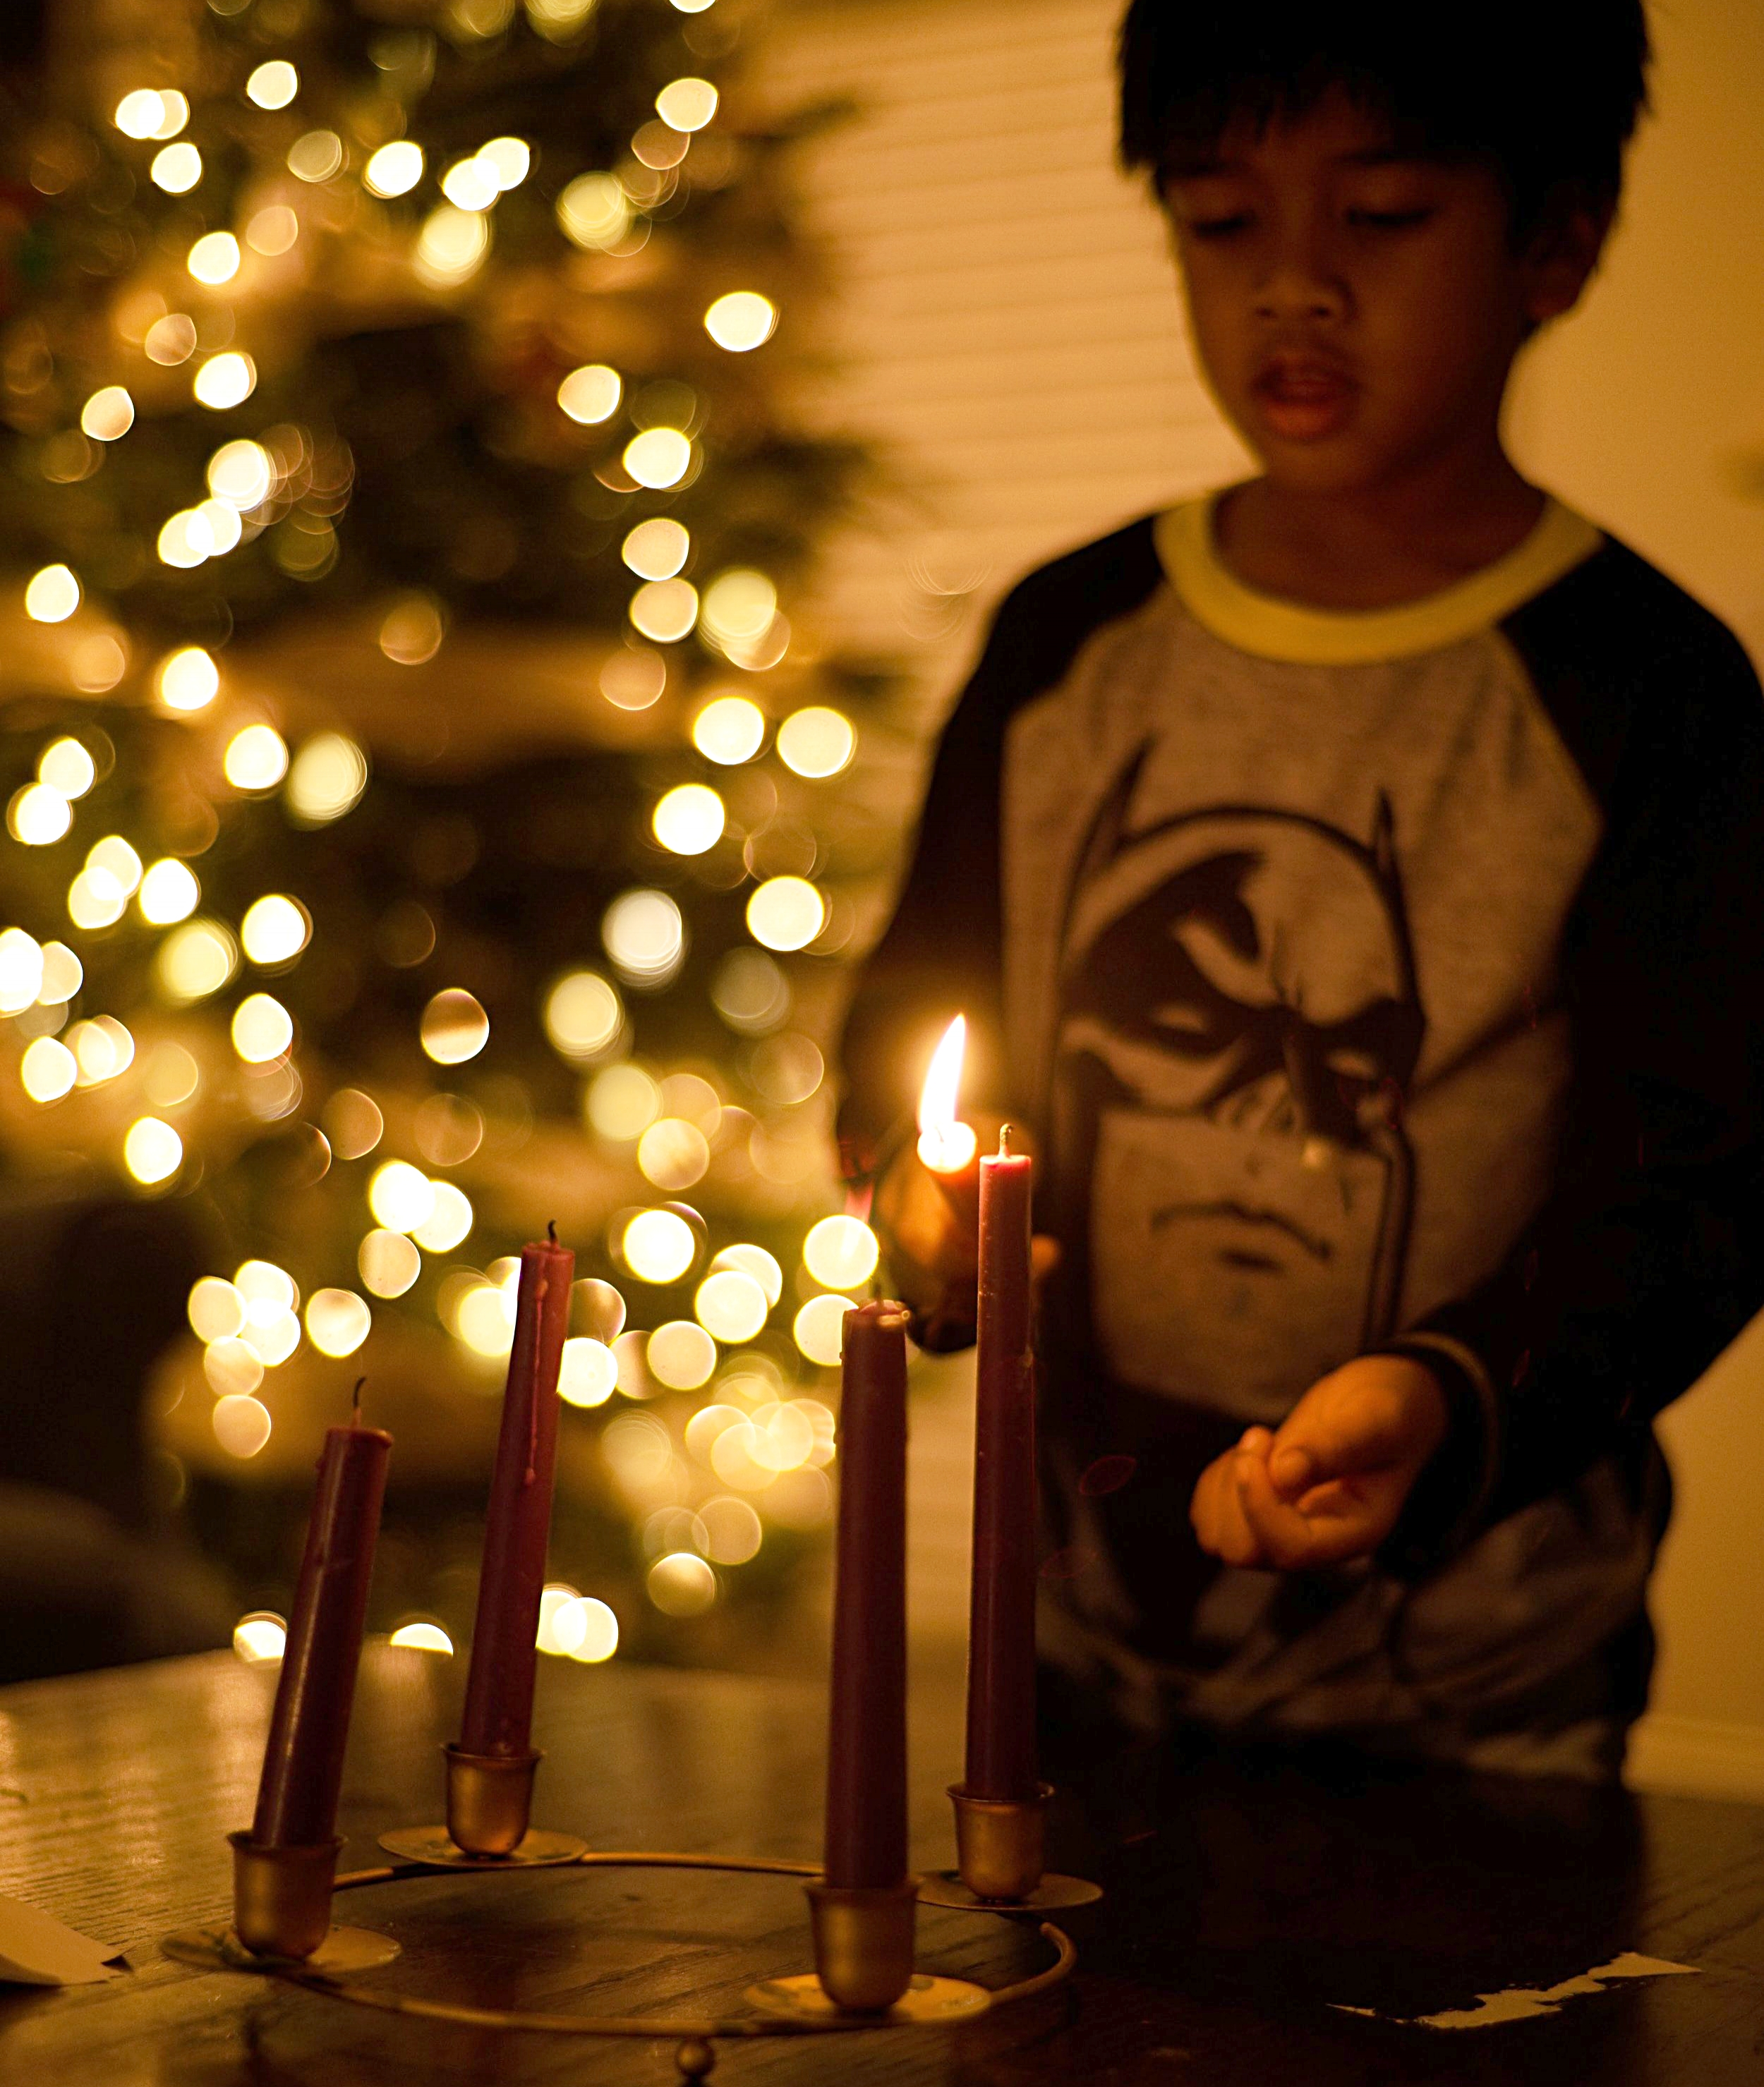 My son lighting our VERY SIMPLE advent wreath.